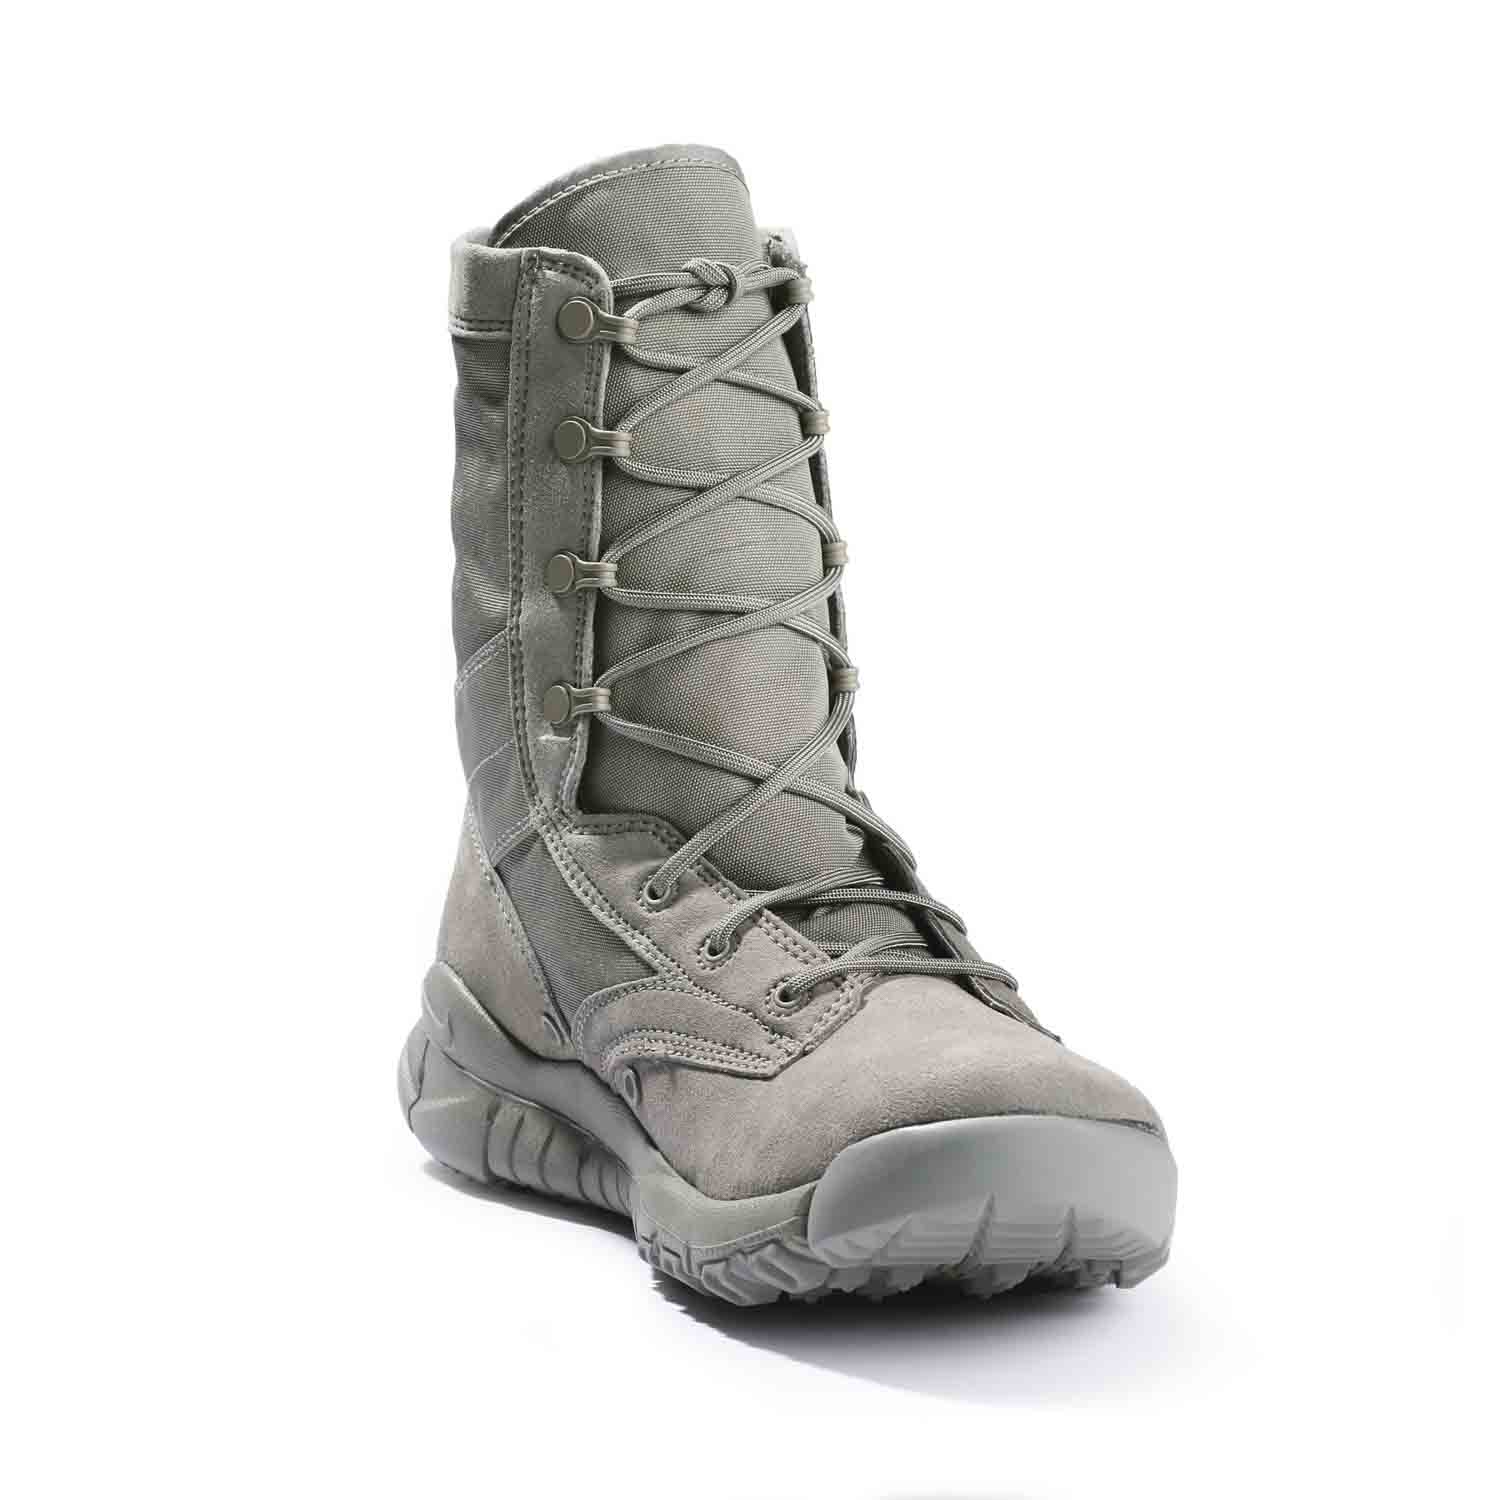 Sage Nike Special Field Boot